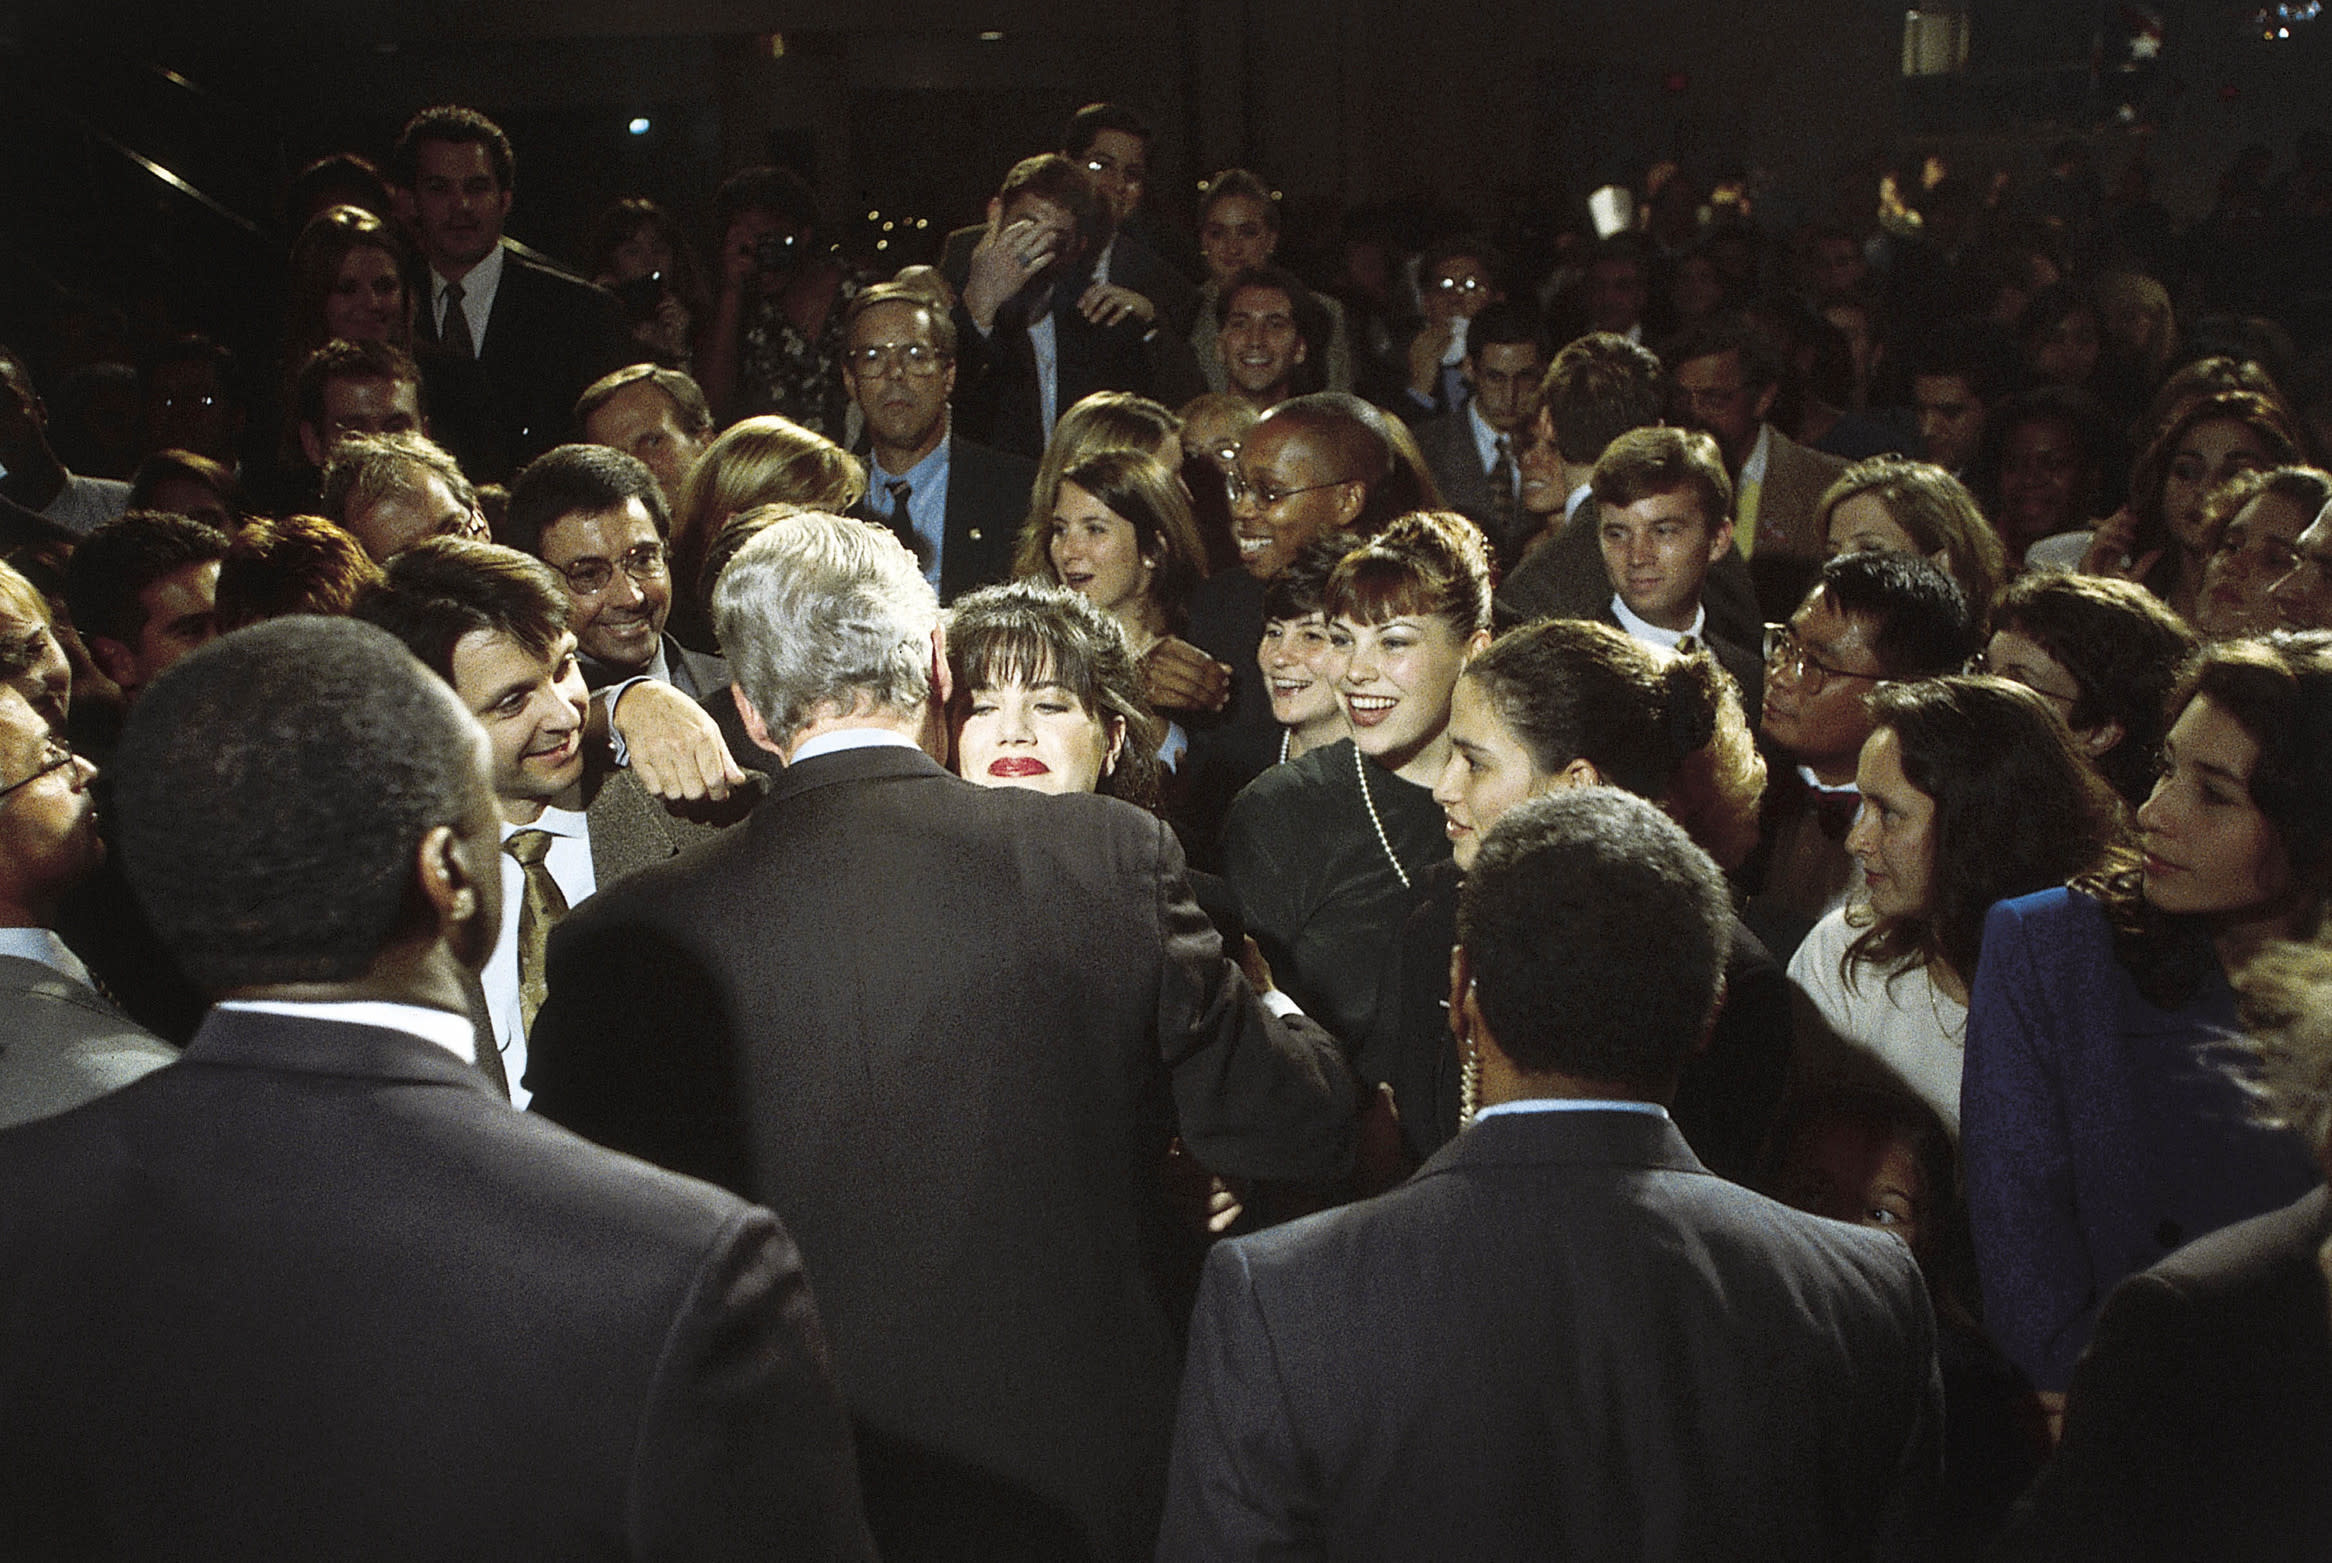 Monica Lewinsky Embraces President Bill Clinton At A Democratic Fundraiser in Washington D.C. on 10/23/96. (Photo By Dirck Halstead/Getty Images)